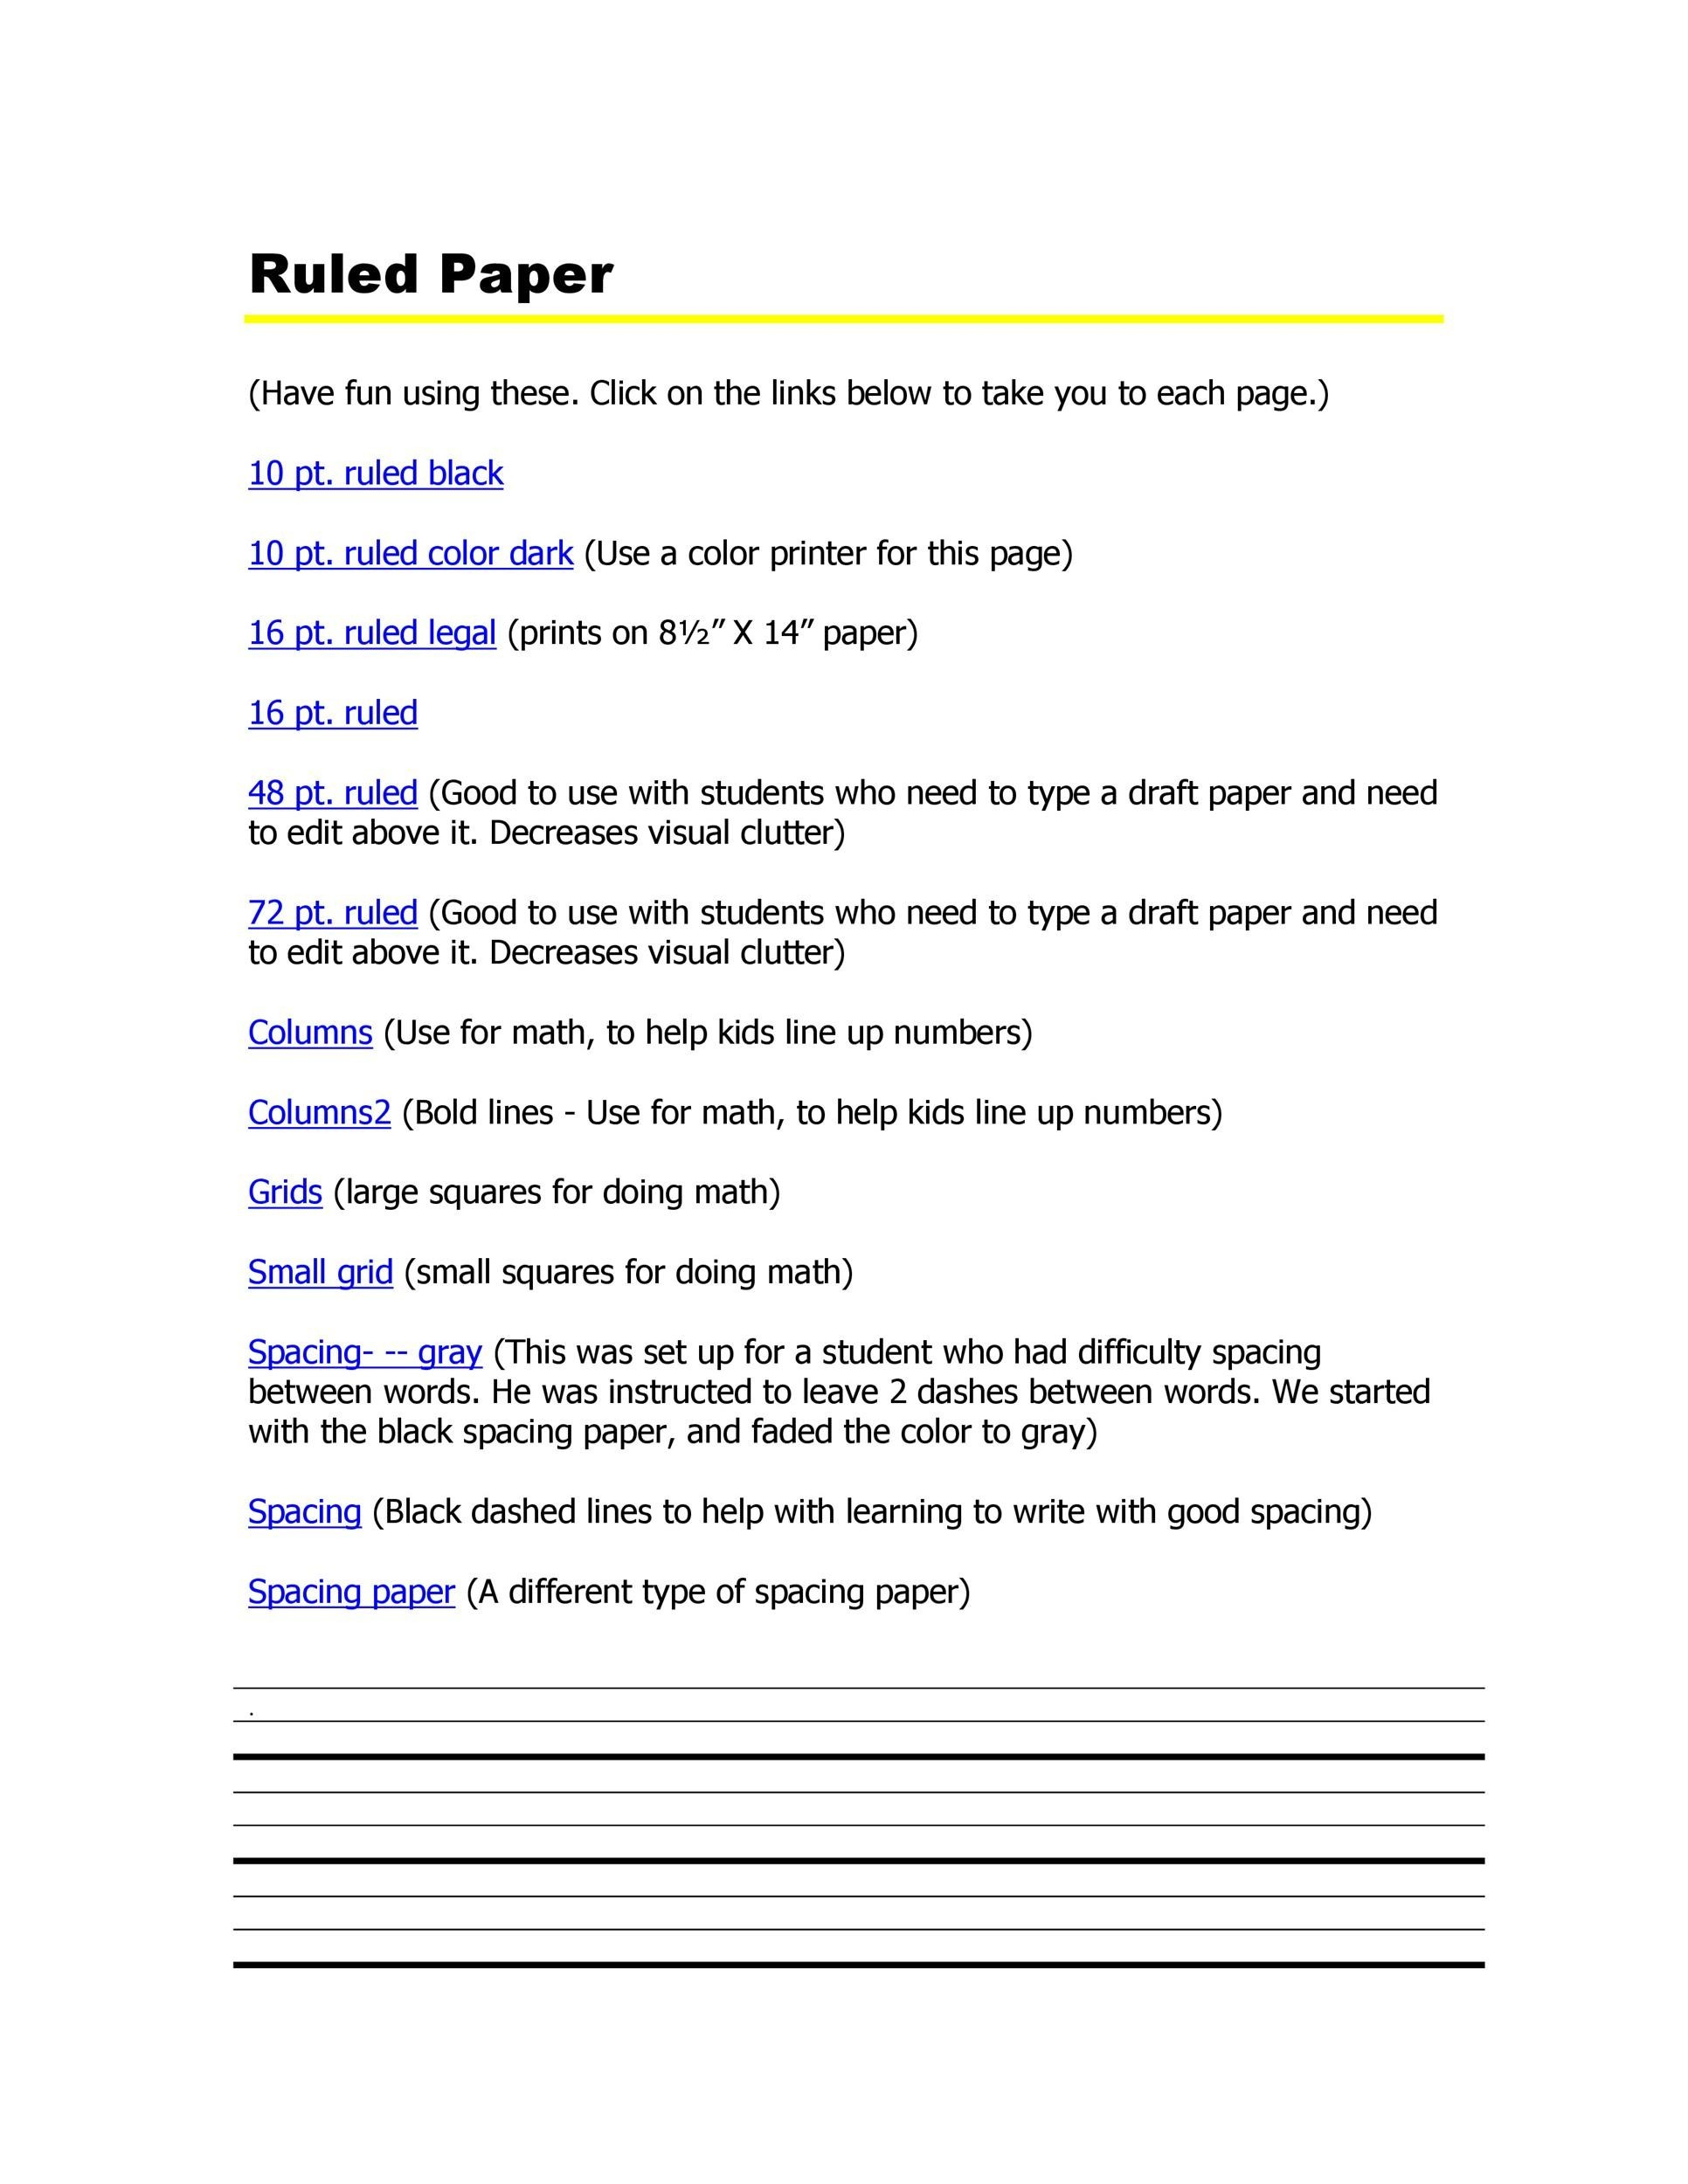 32 Printable Lined Paper Templates ᐅ Template Lab